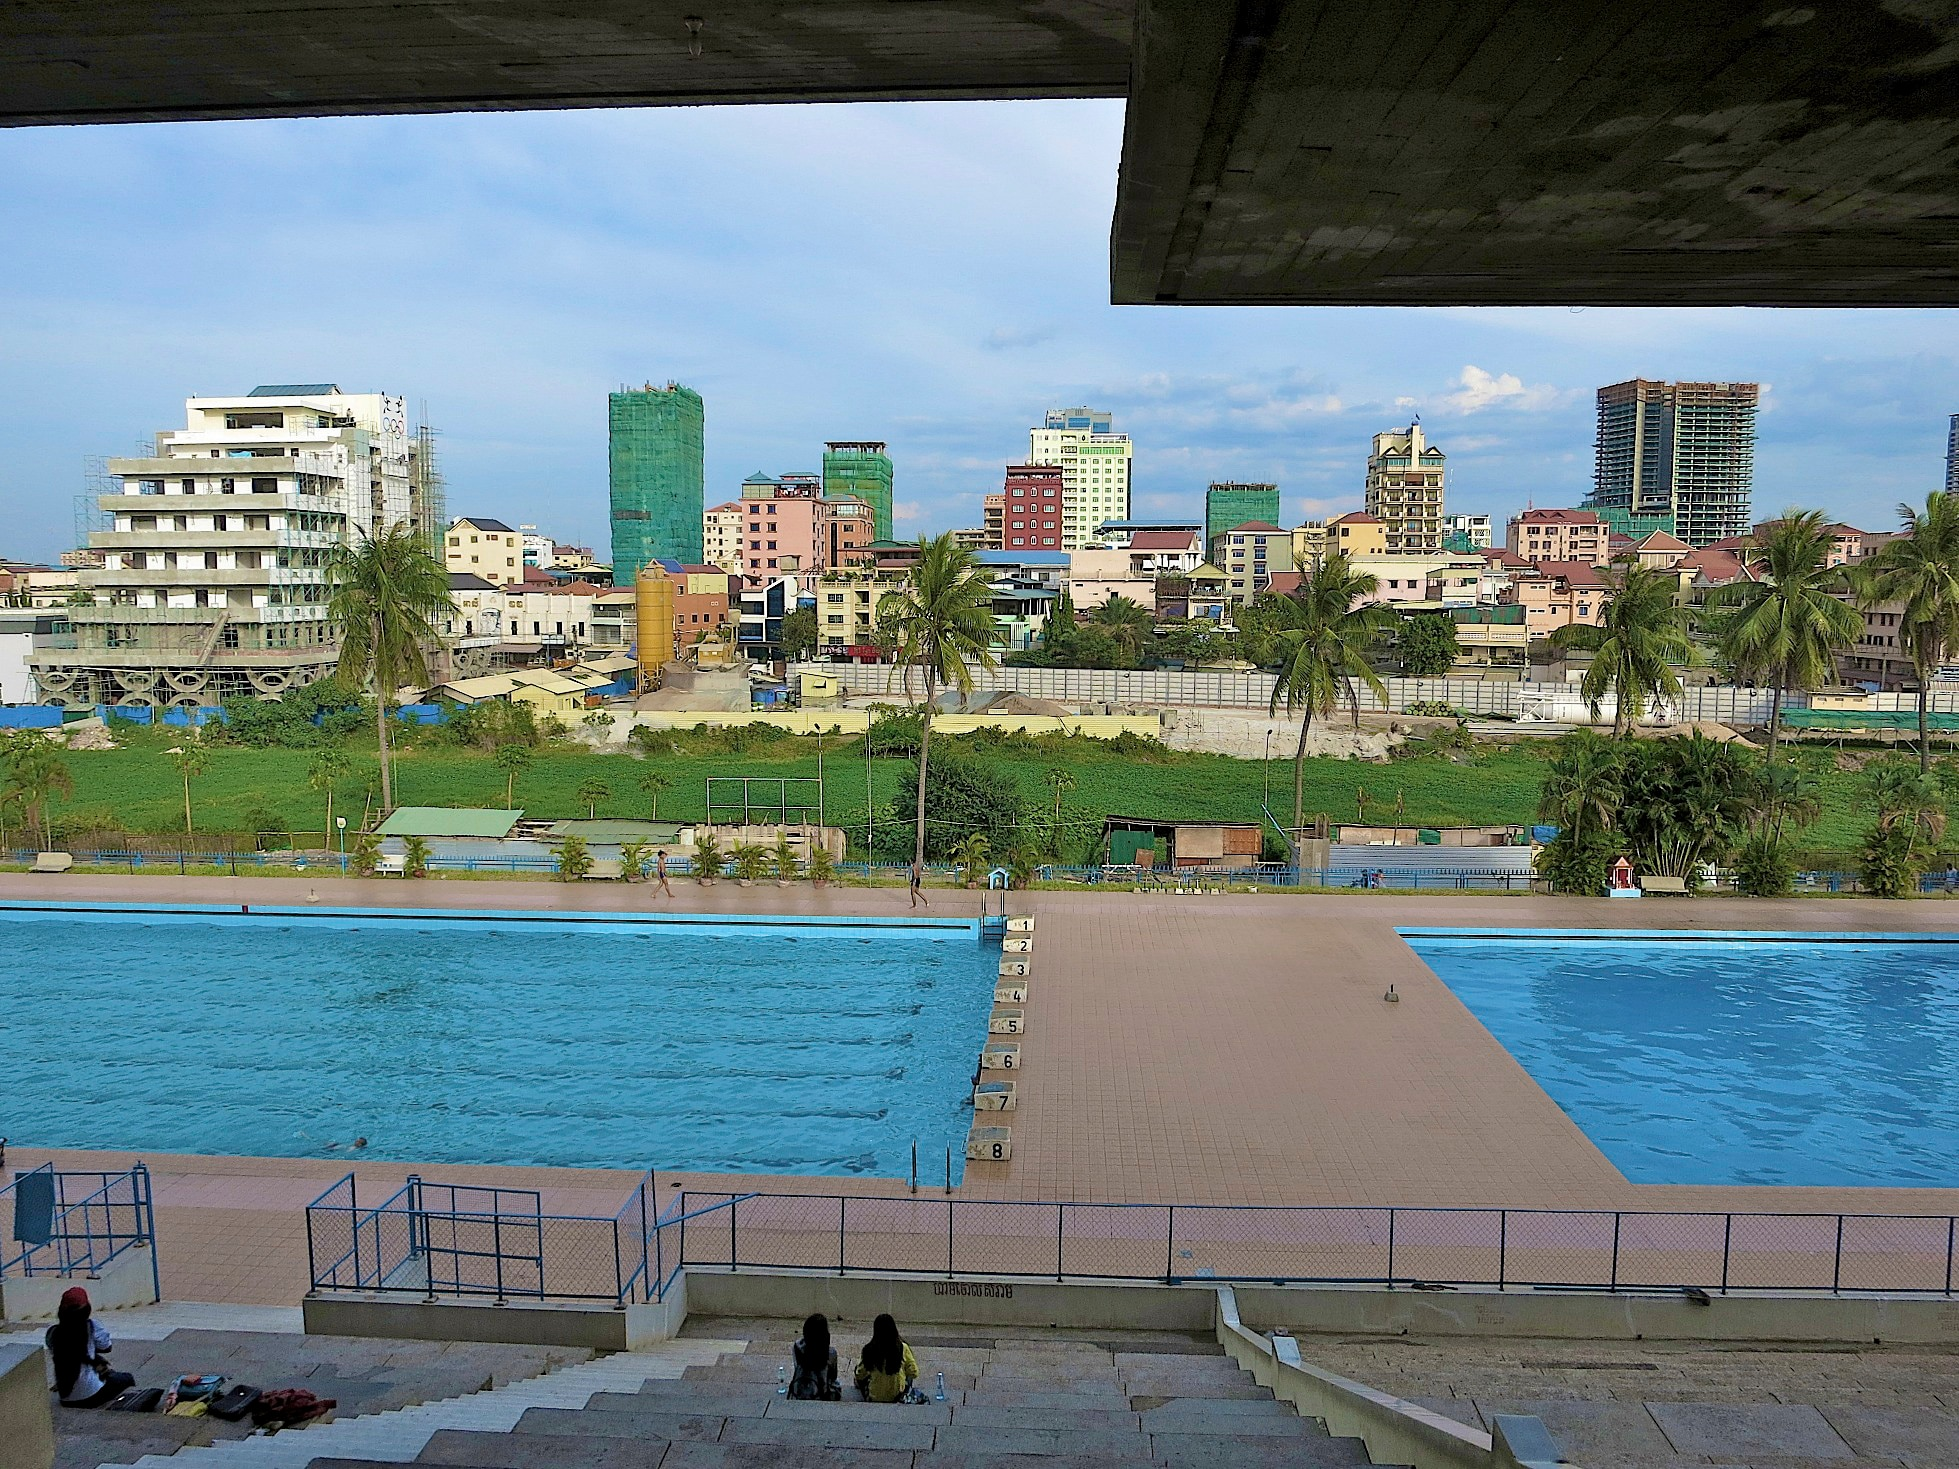 An Olympic-sized swimming pool makes up part of the stadium.